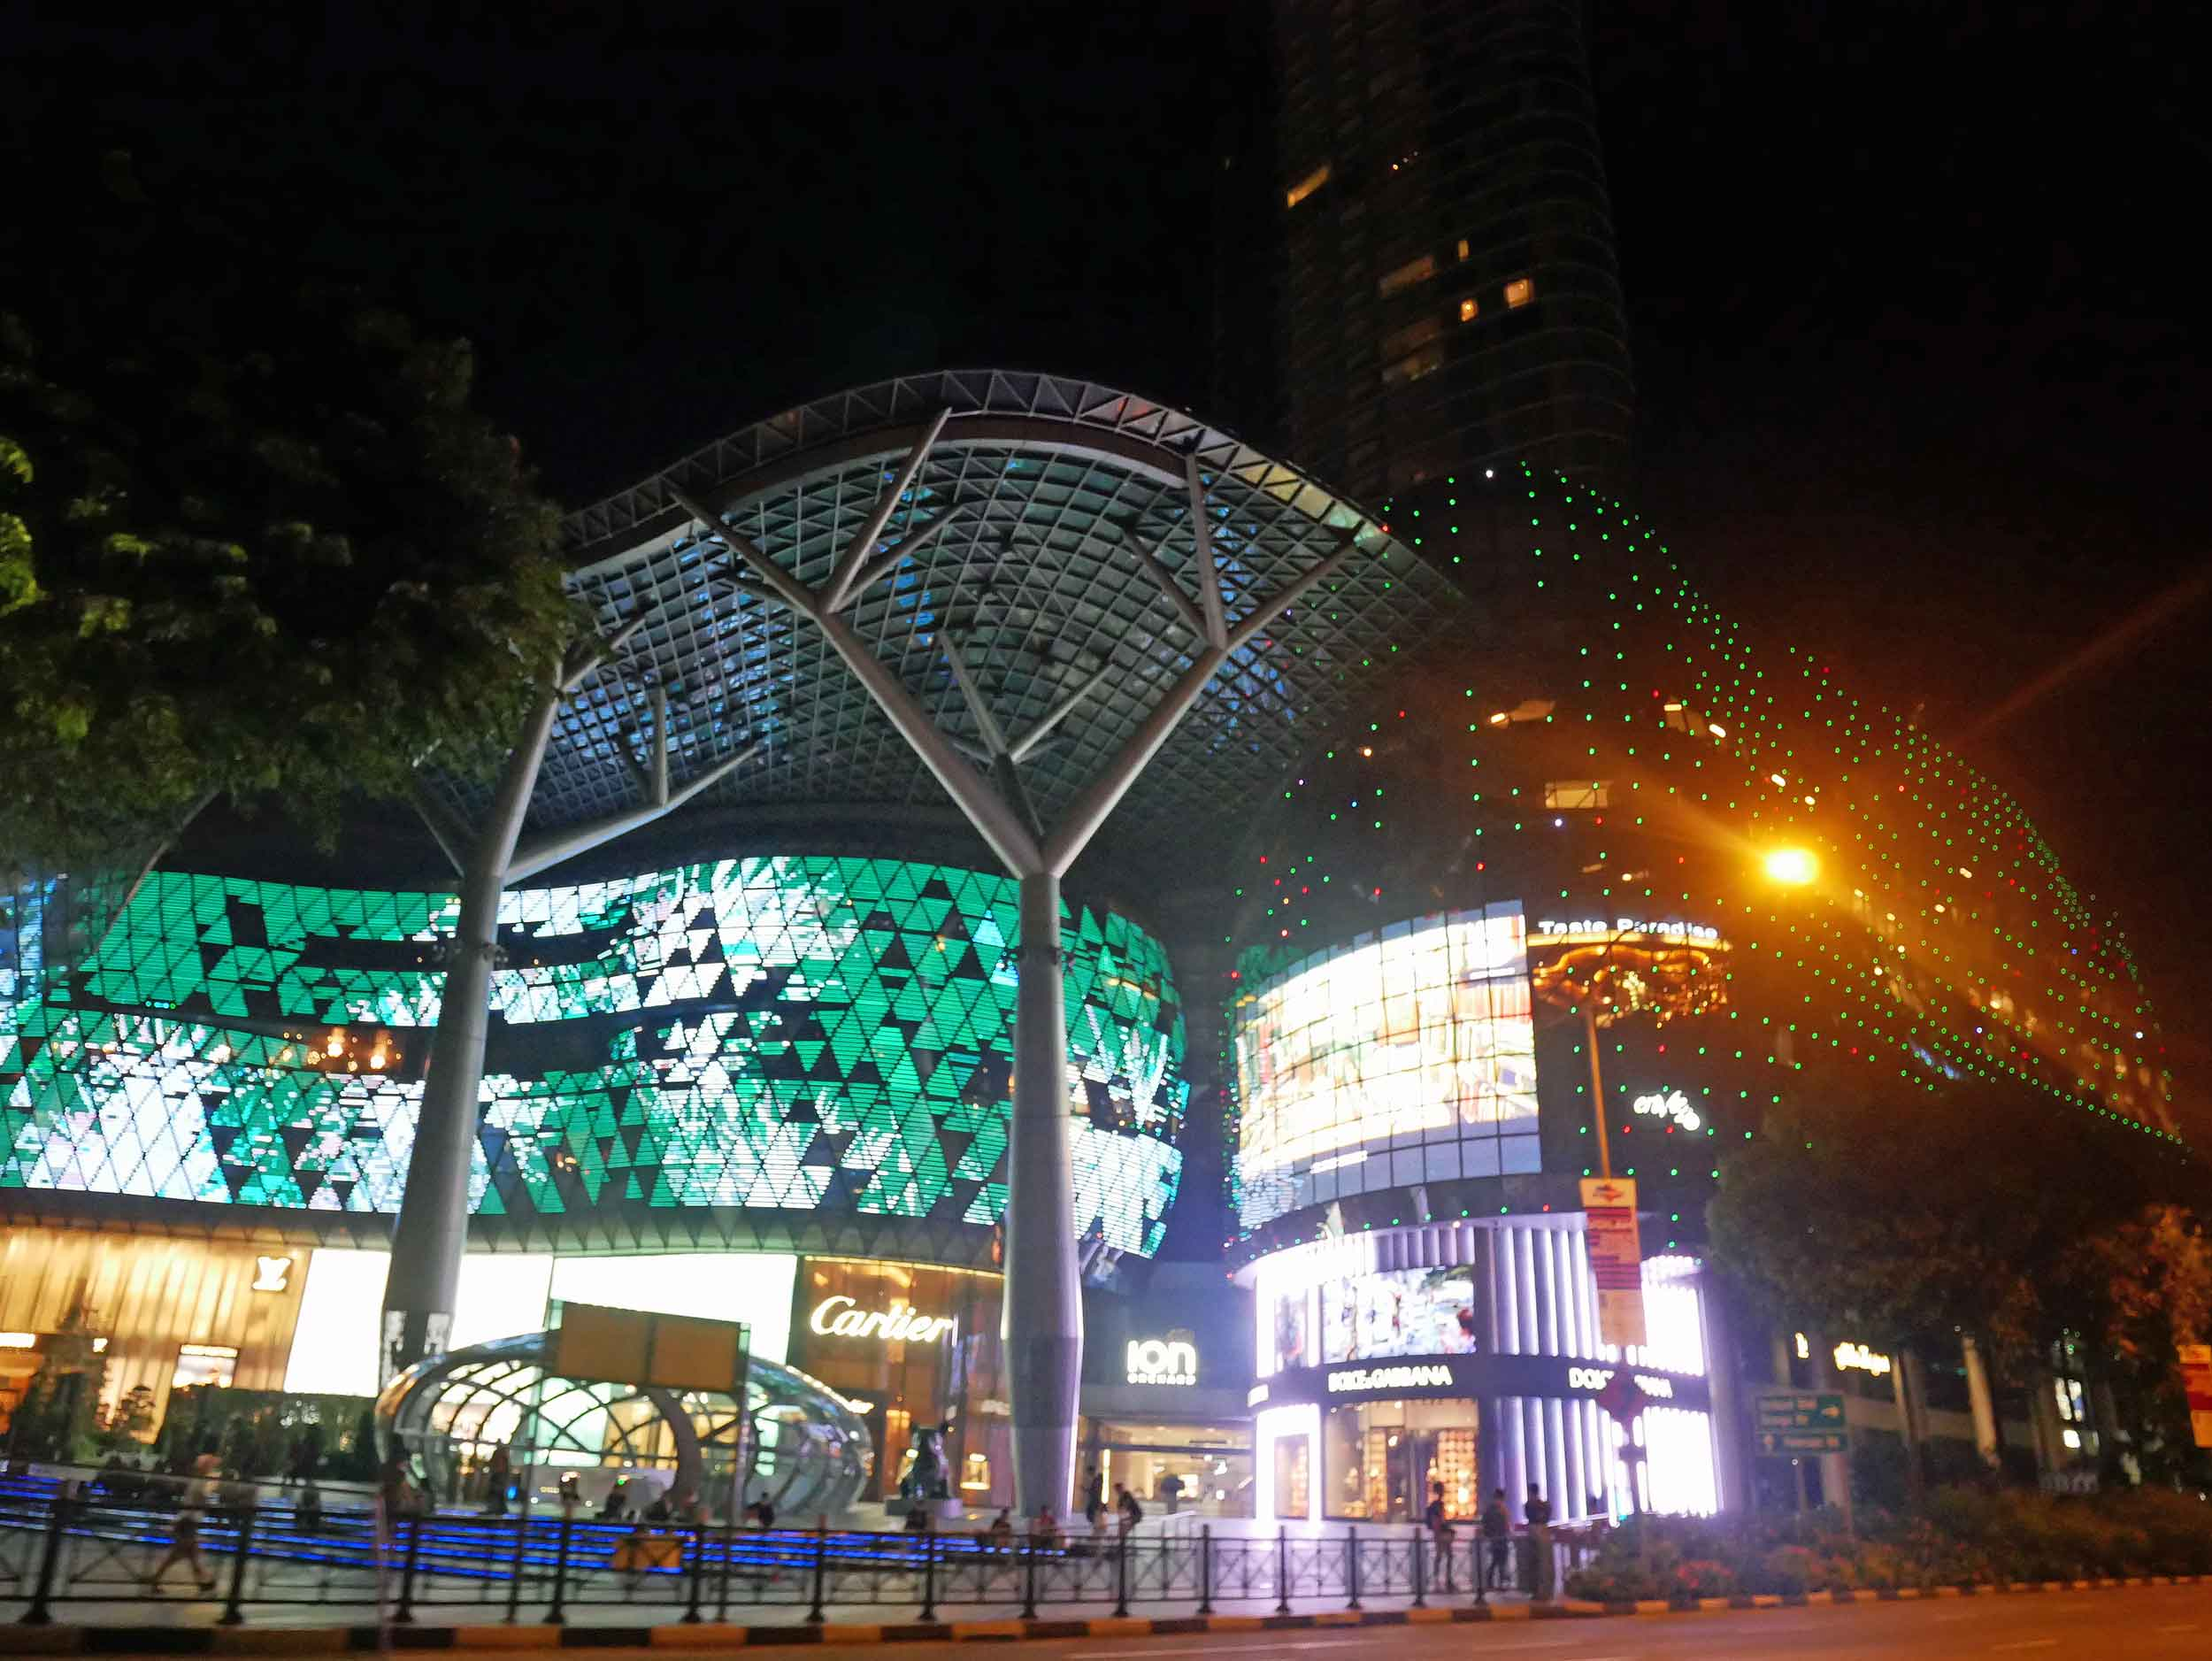 Singapore transforms at night, as displayed in the vibrant, bright lights of ION Orchard.